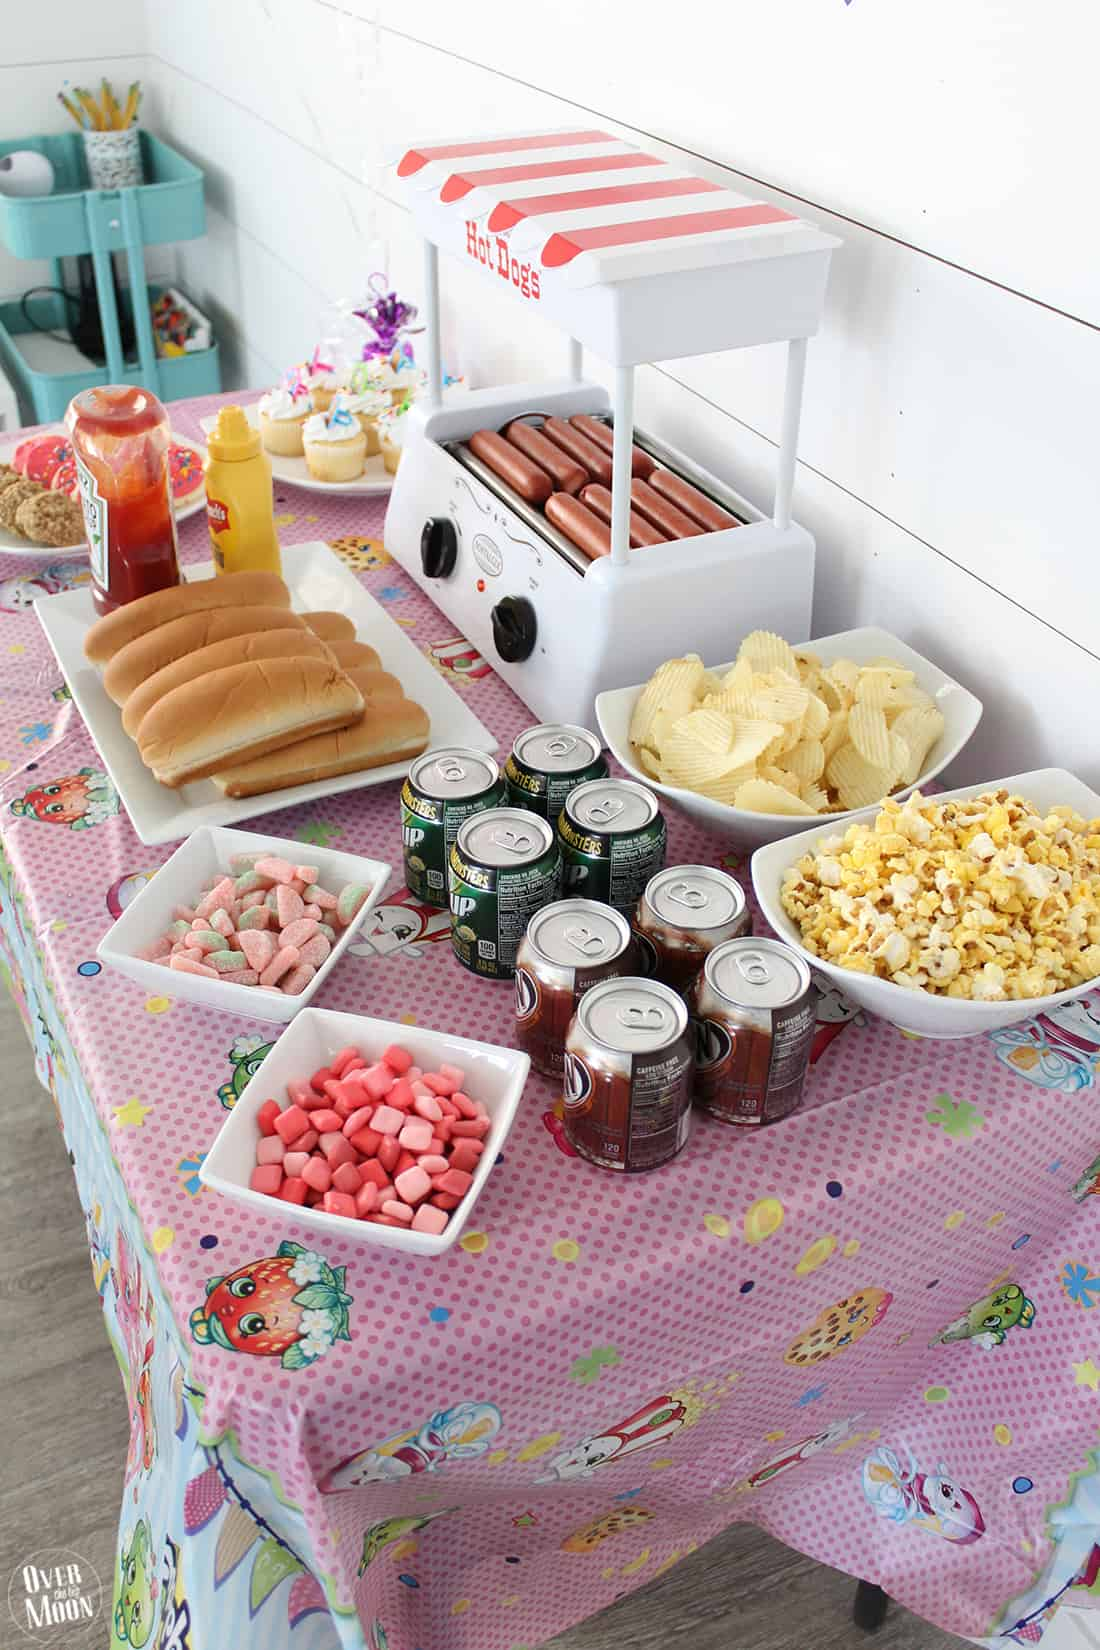 How to Have a Simple Kids Birthday Party Over The Big Moon